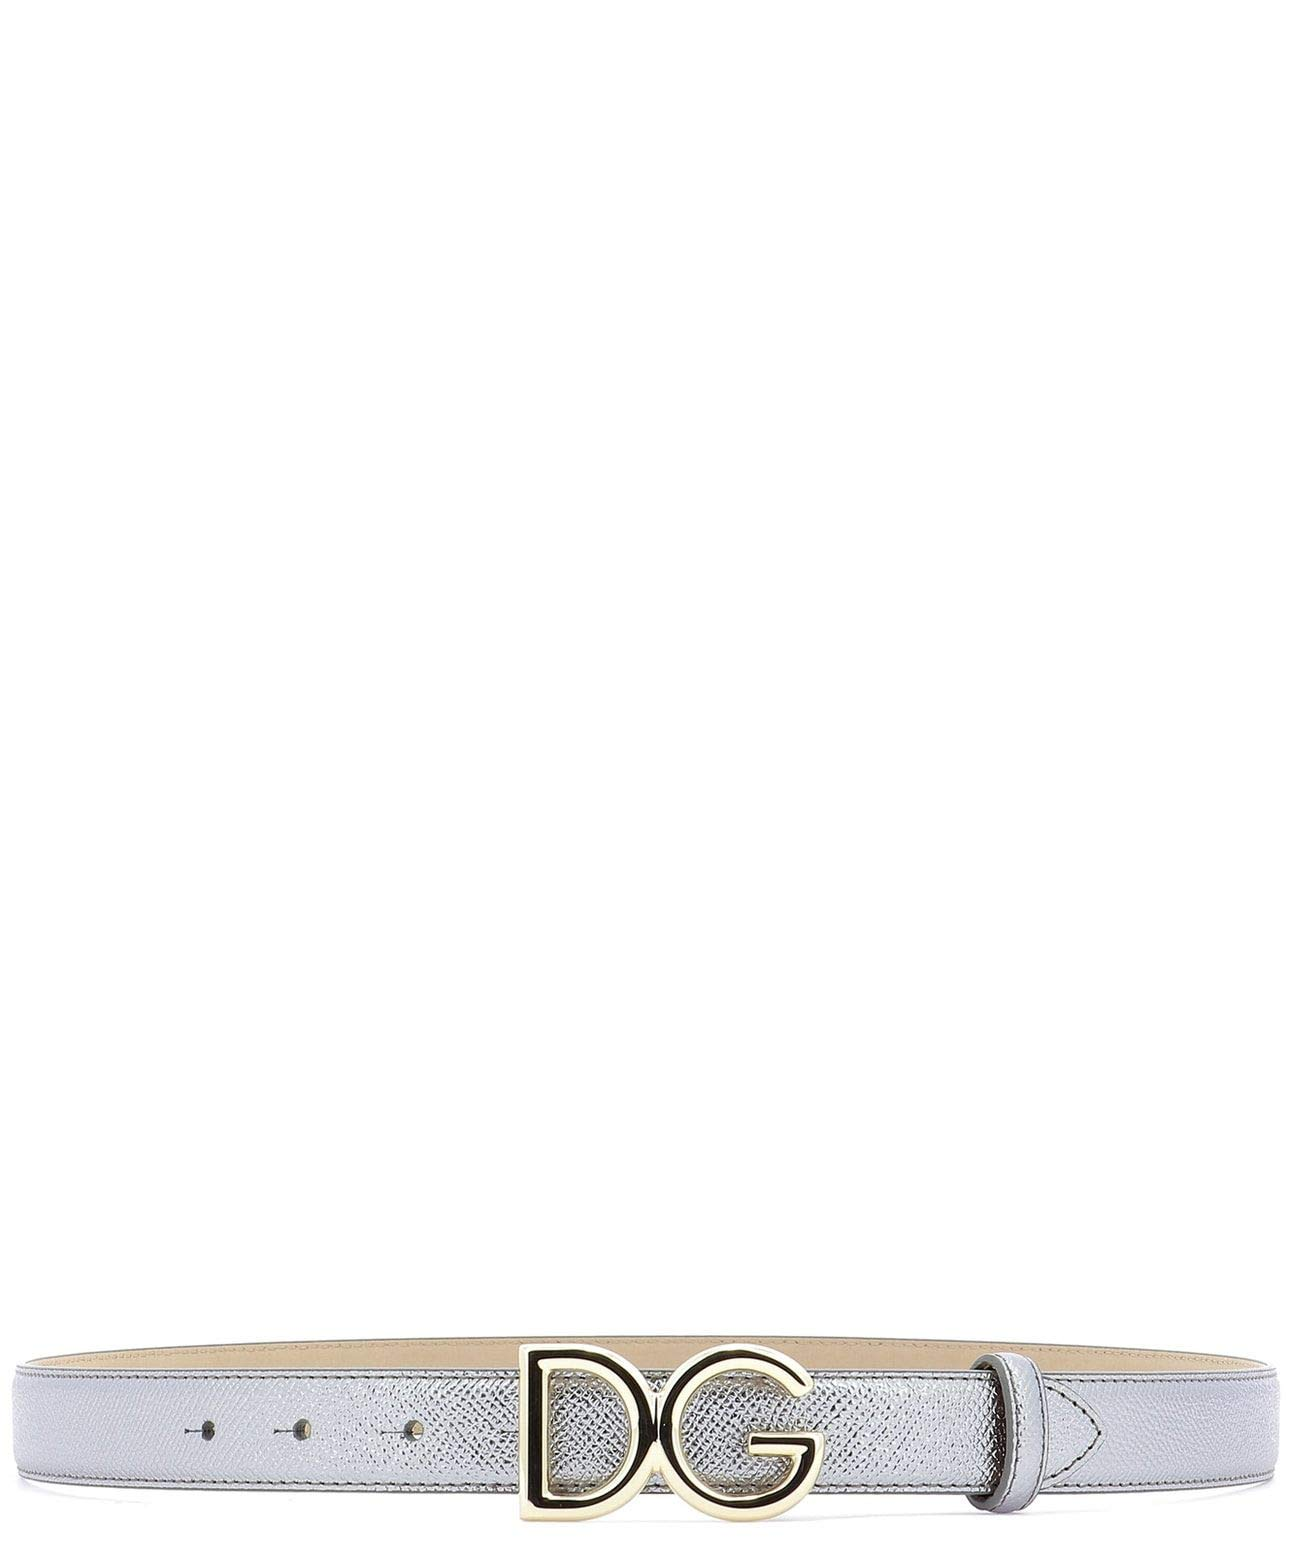 Dolce E Gabbana Women's Be1325az80880750 Silver Leather Belt